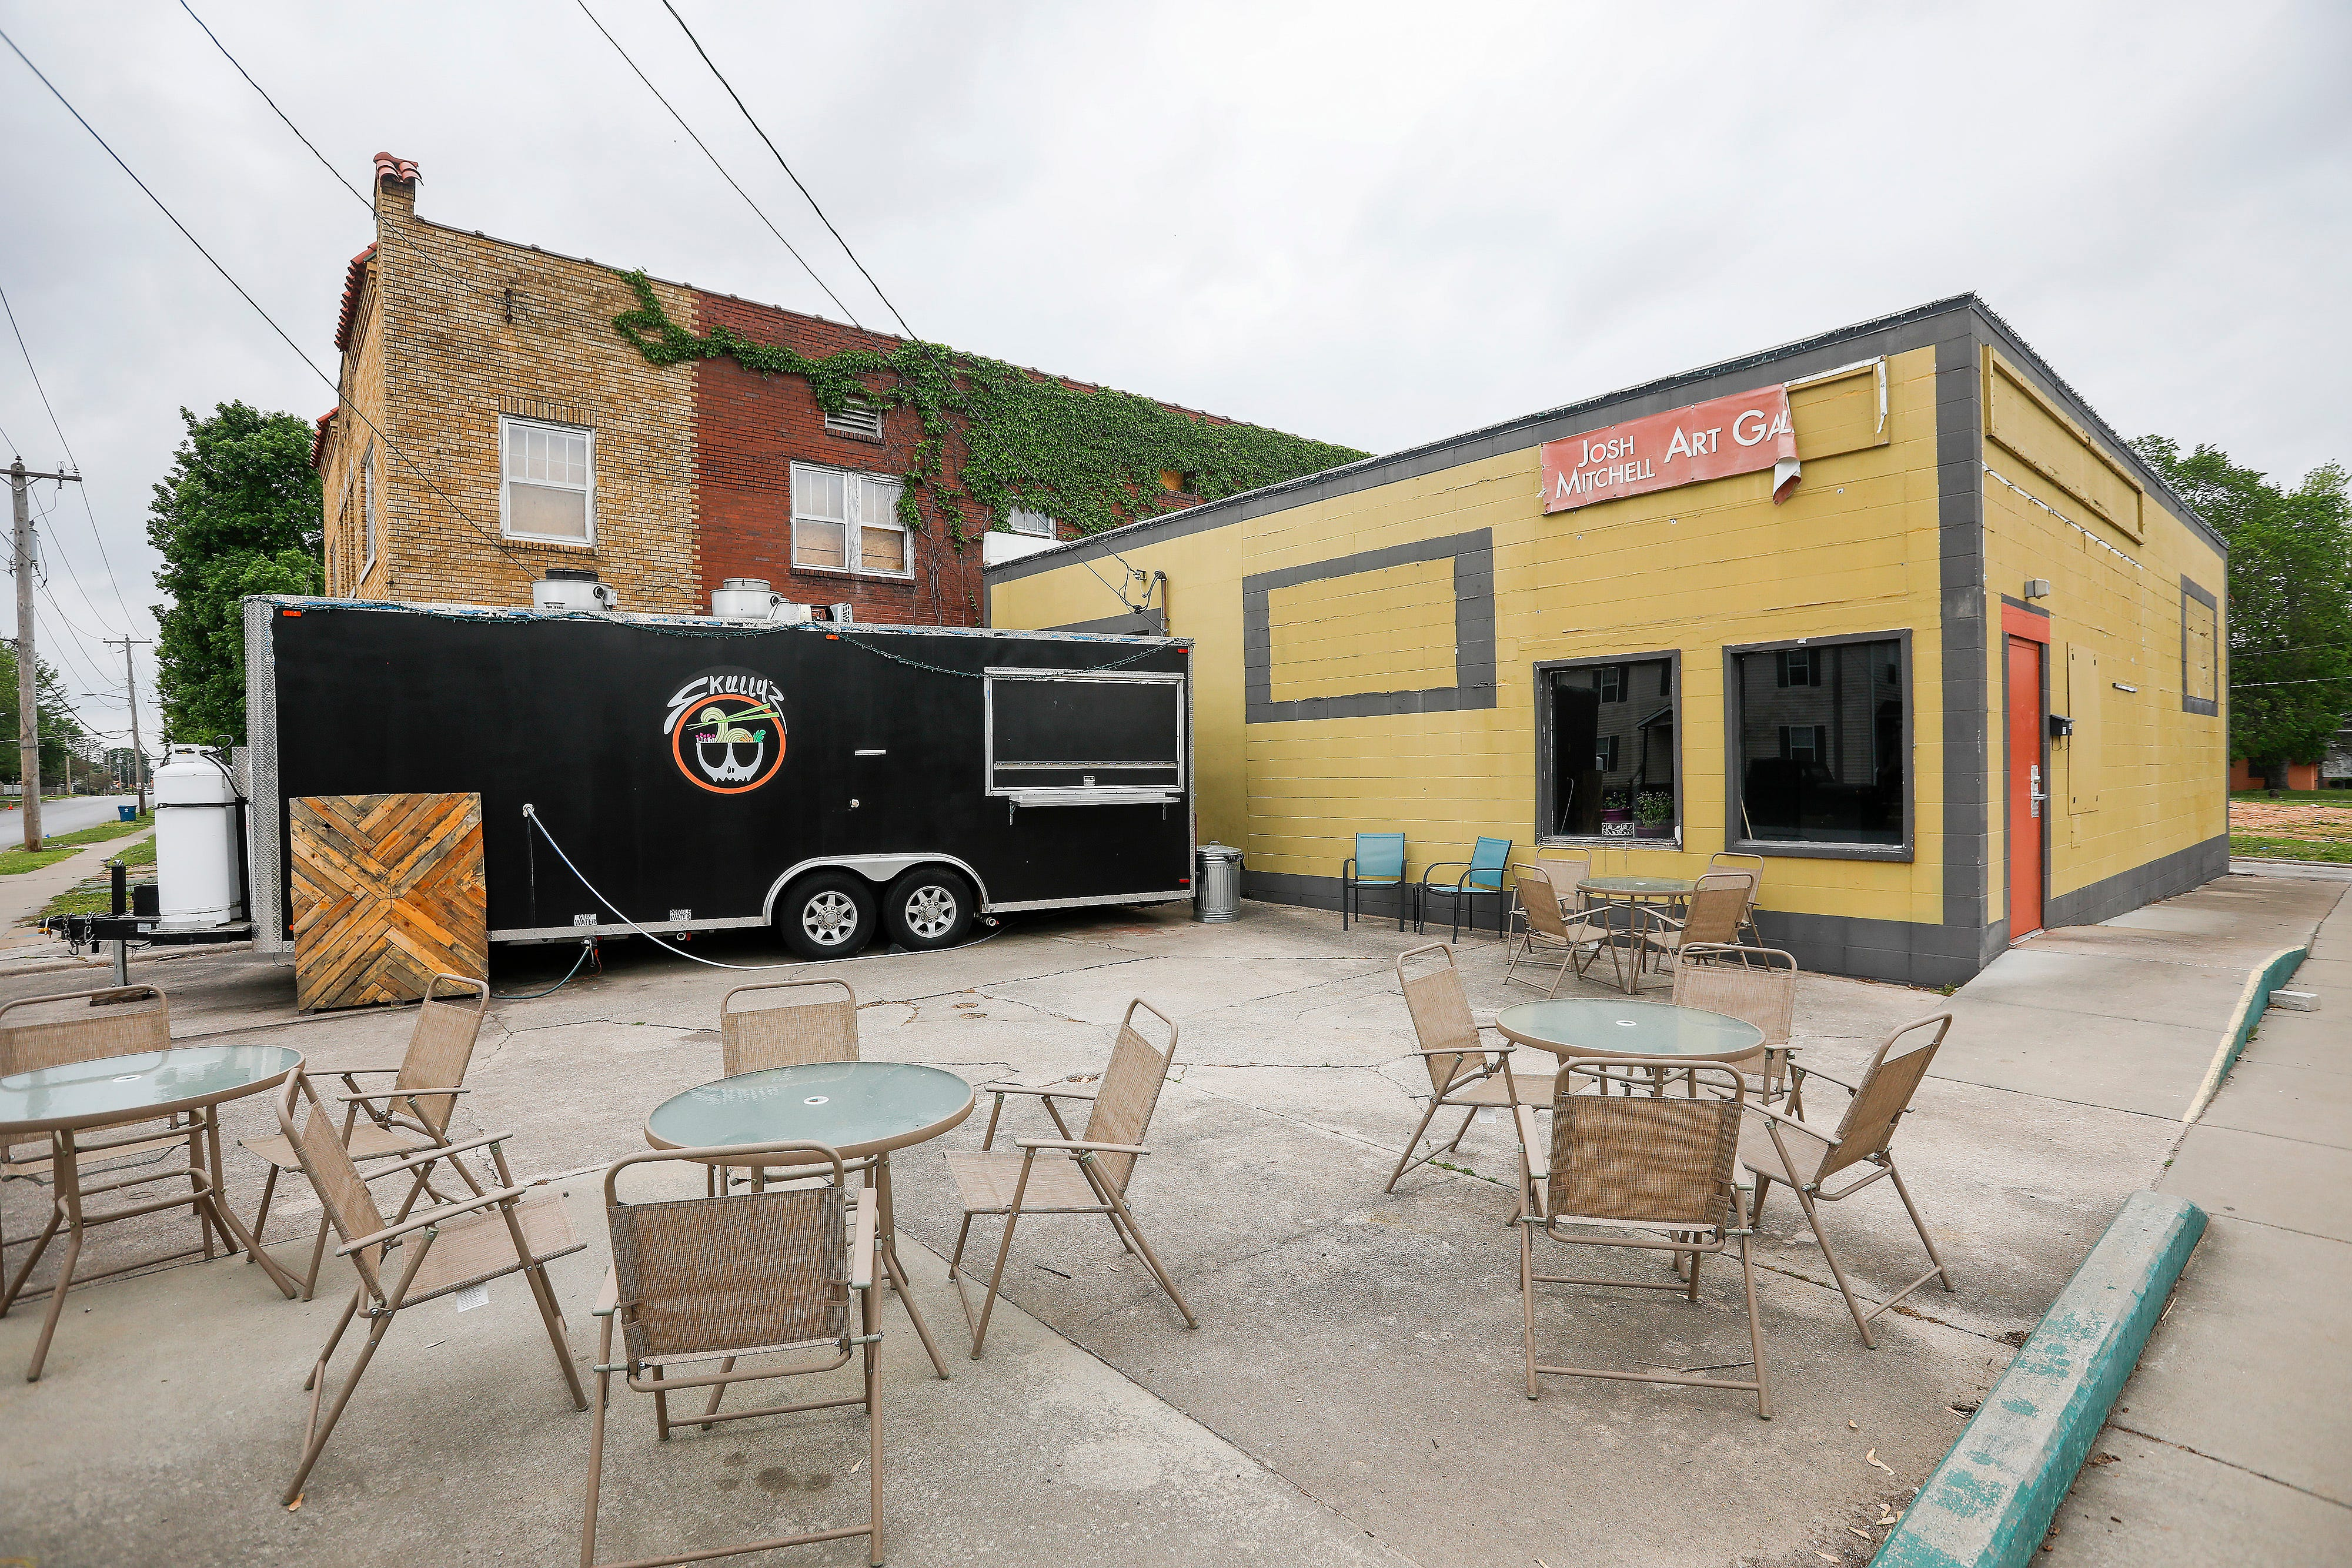 The Royal music hall and Skully's Food Truck will be moving into the former Josh Mitchell Art Gallery building at the corner of Cherry Street and Pickwick Avenue.